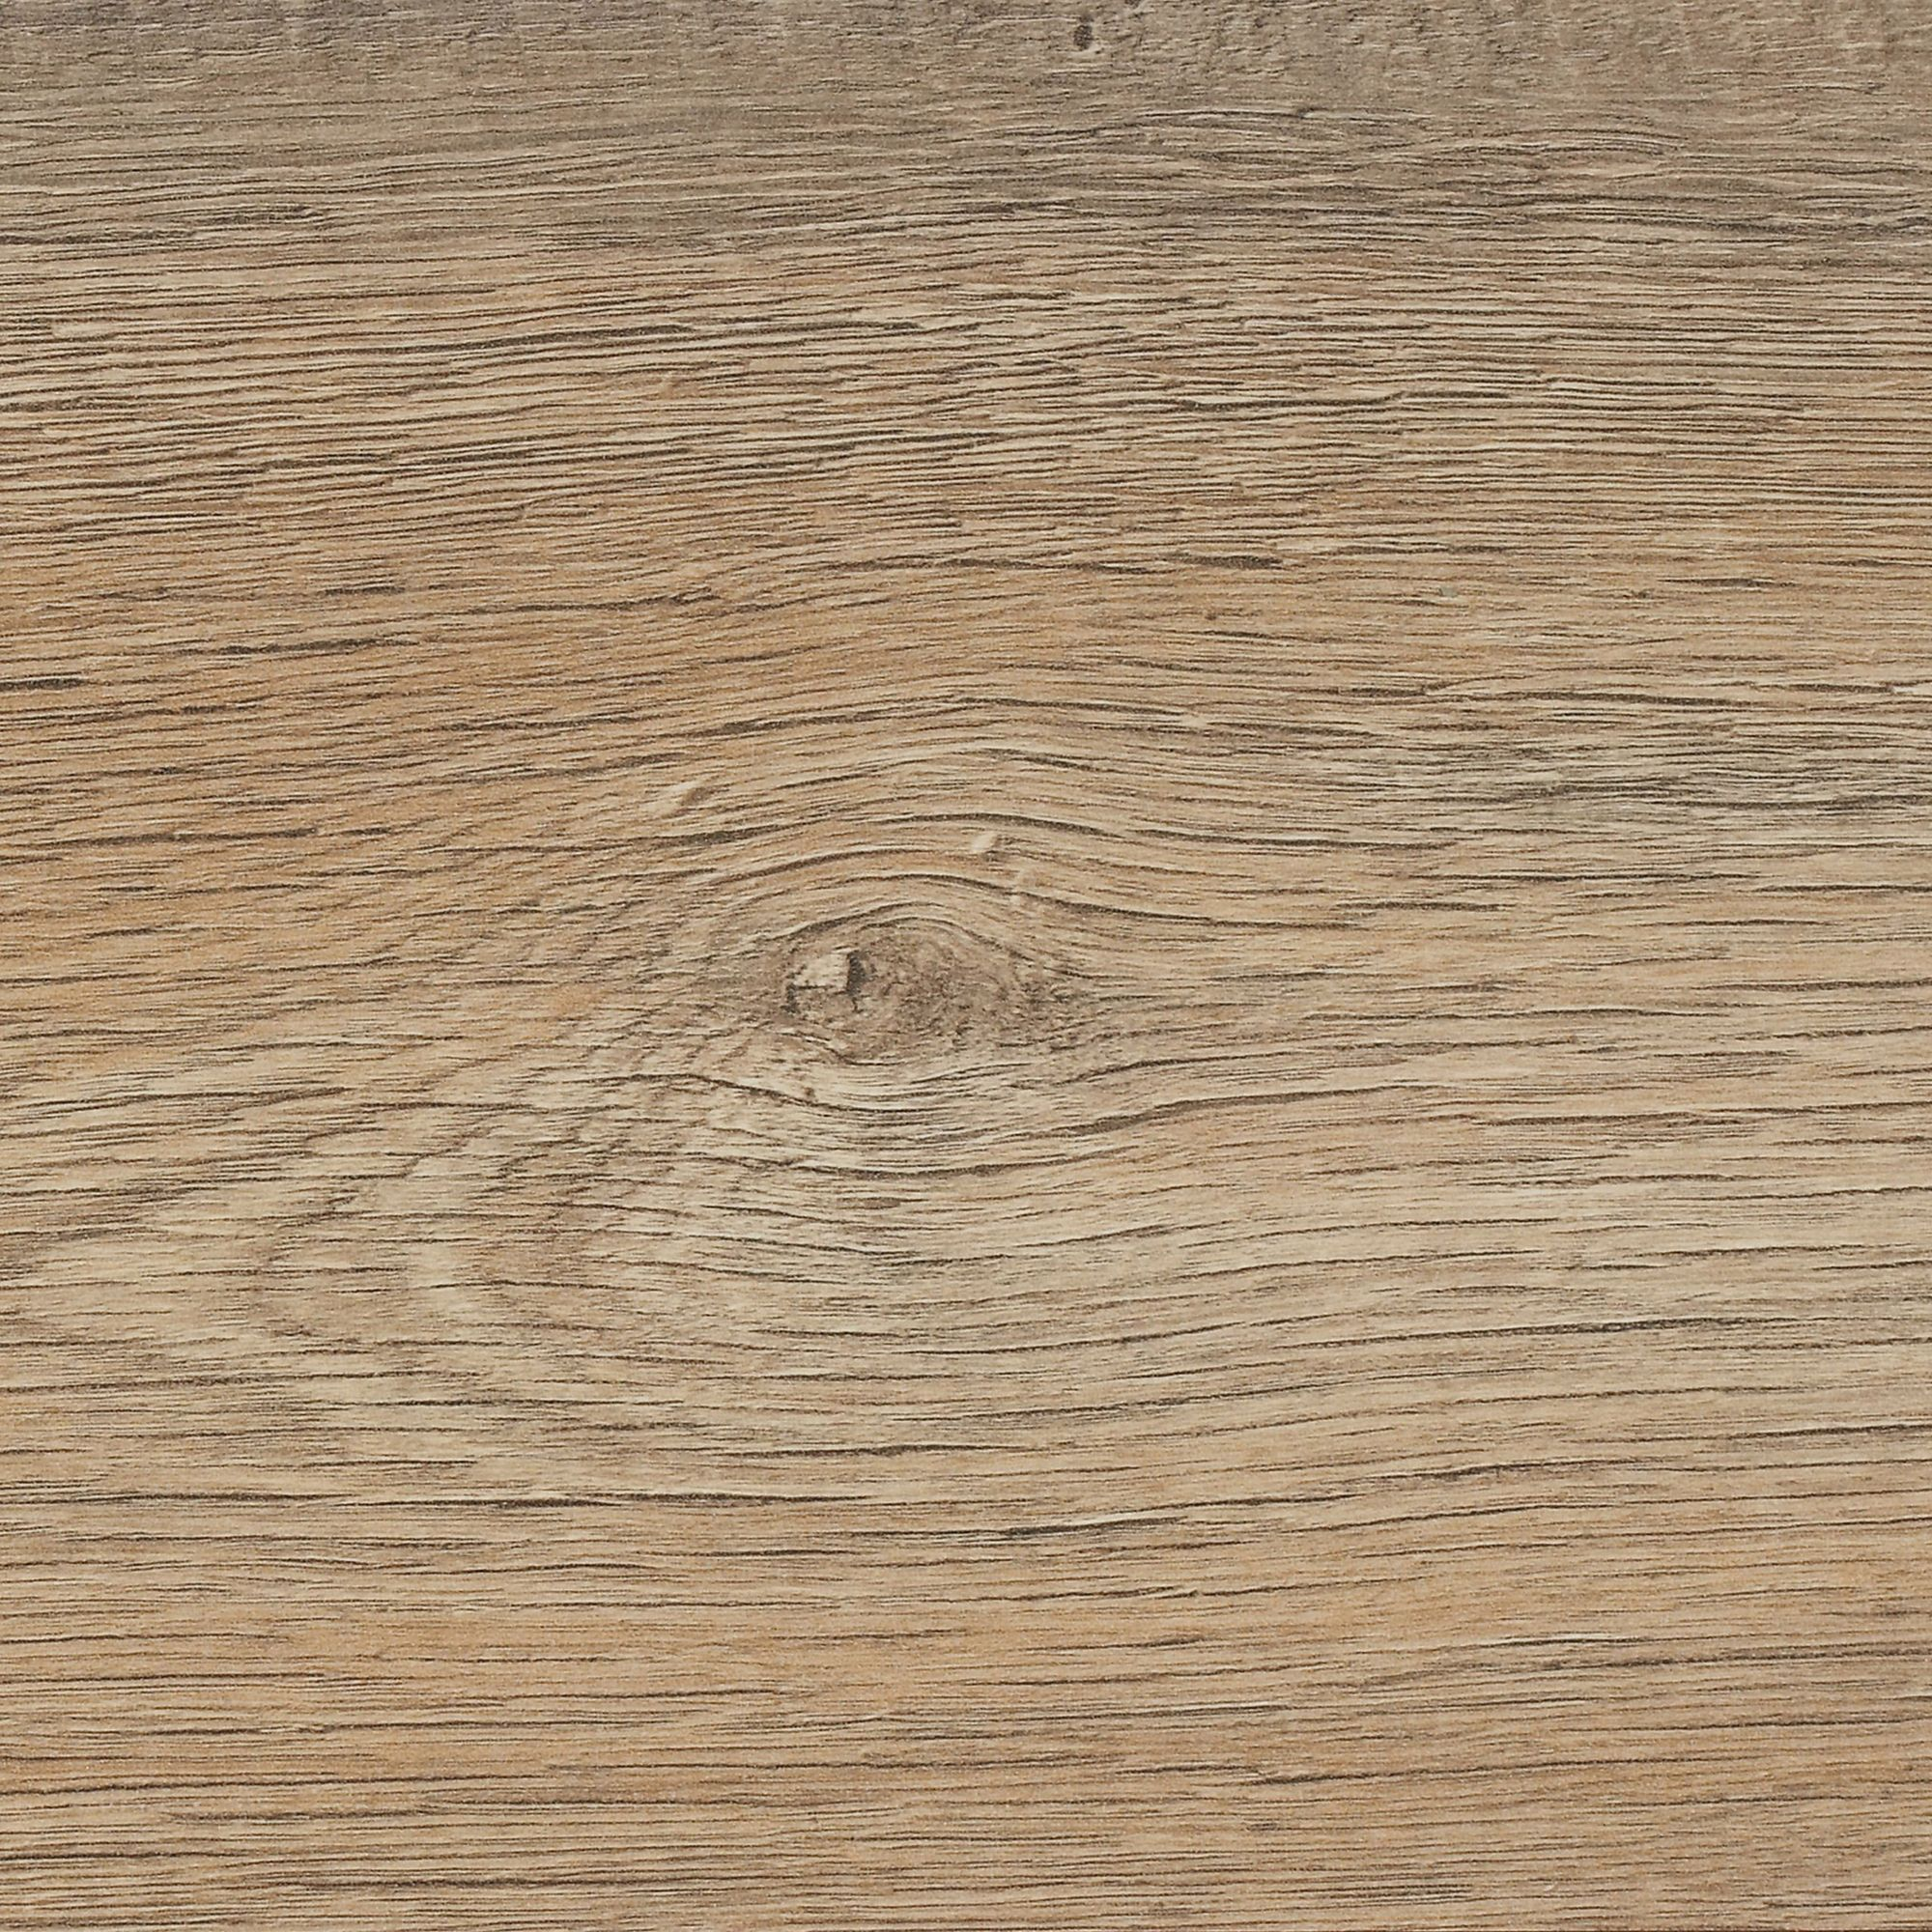 Belcanto Kentucky Oak Effect Laminate Flooring 1.99 m²